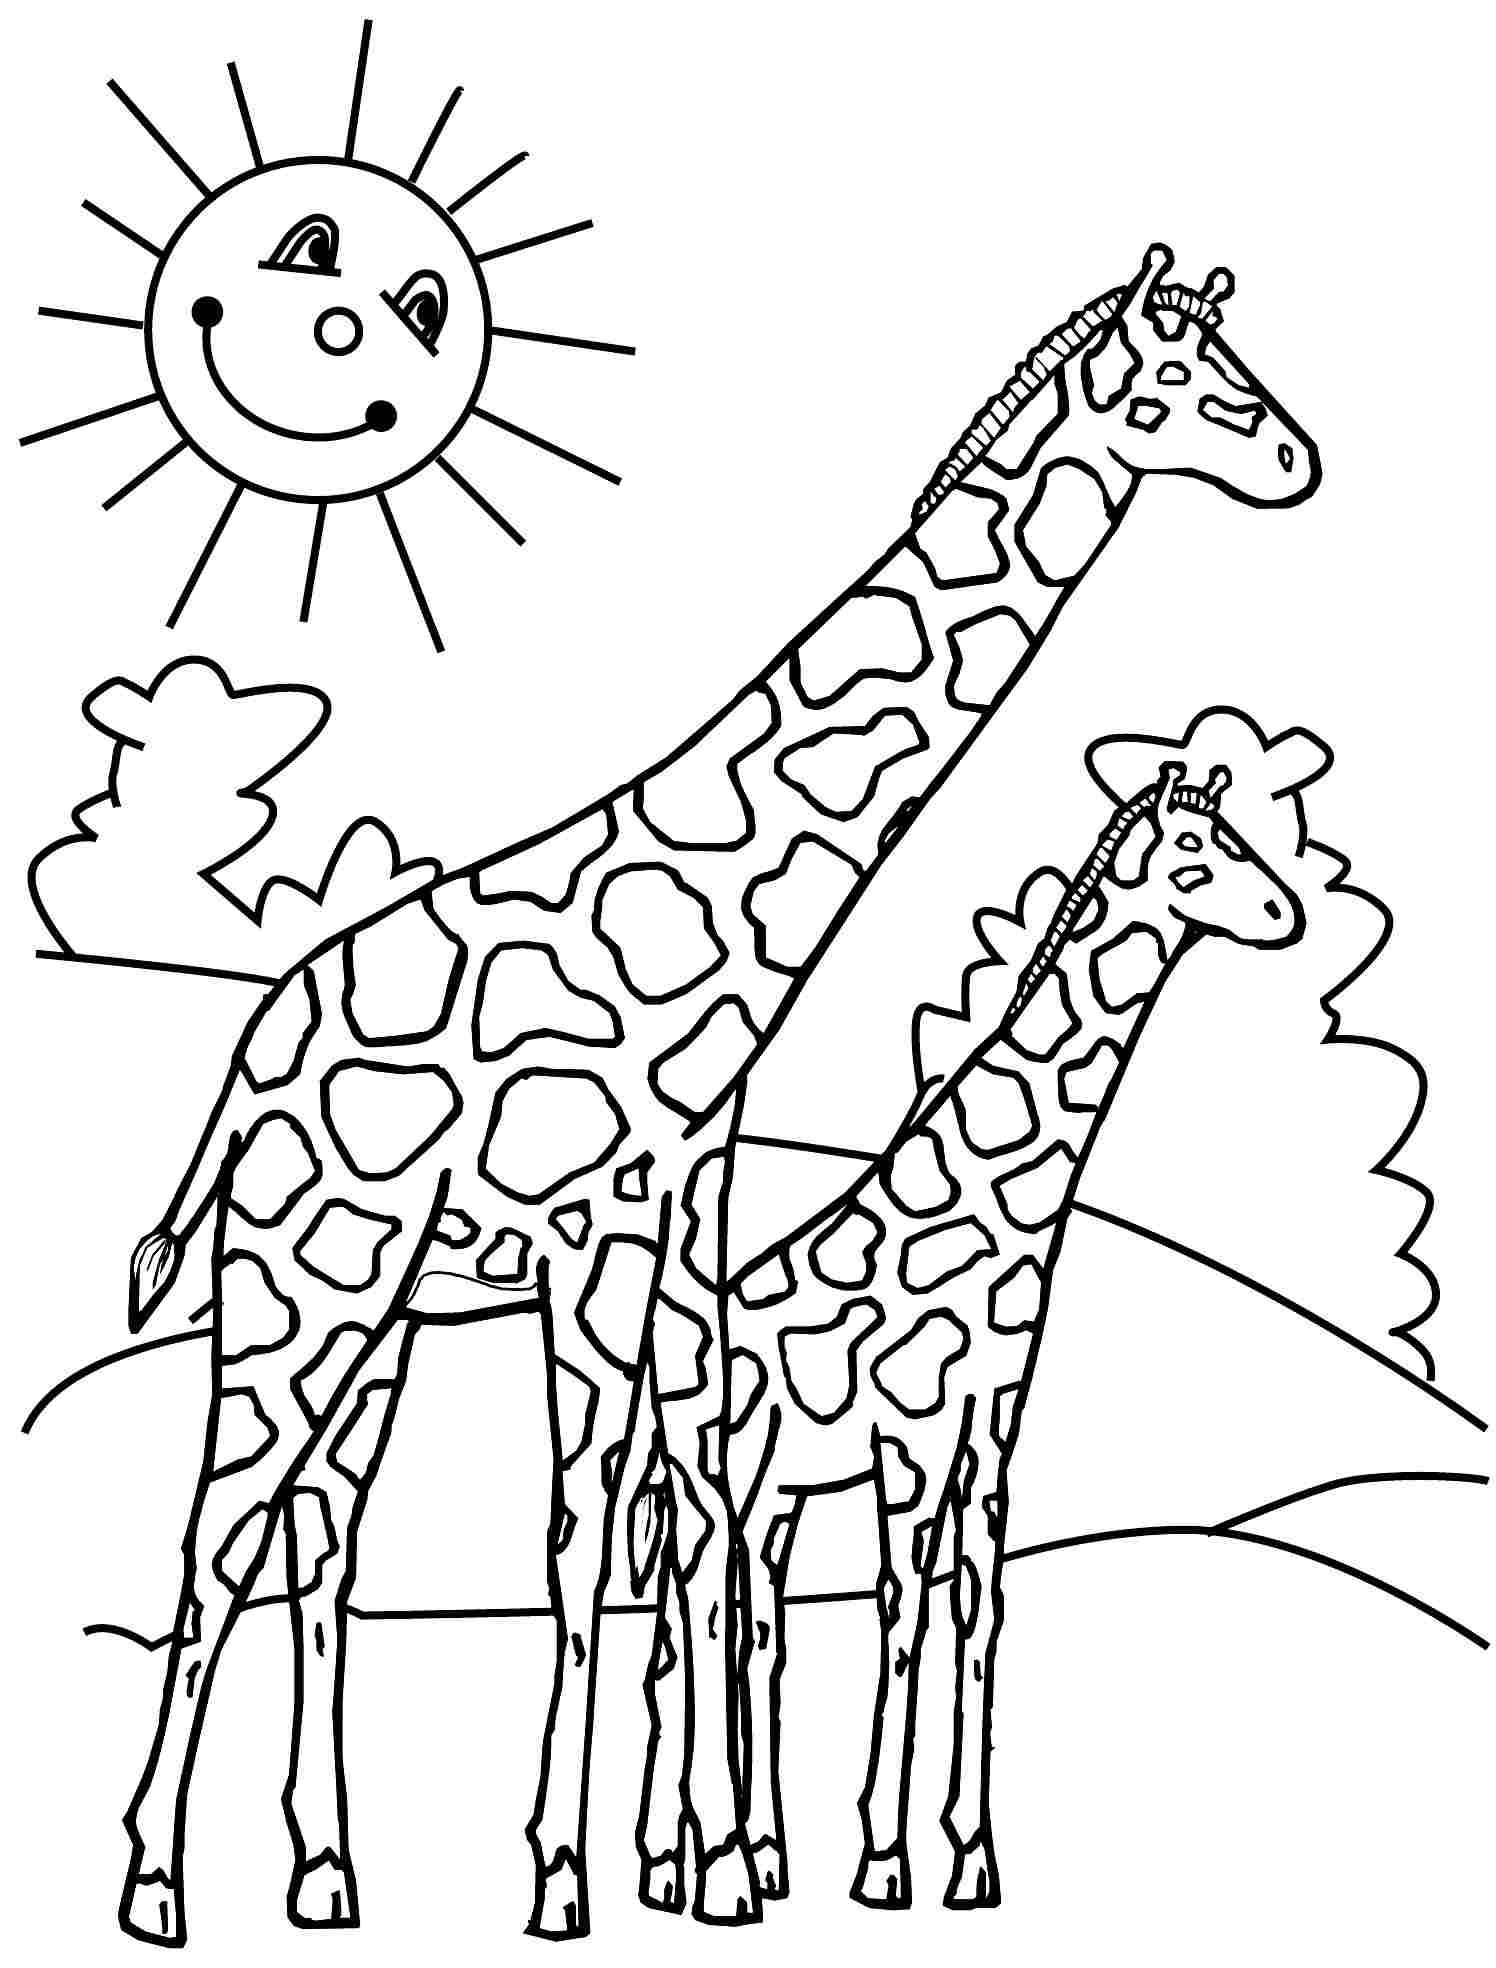 printable colouring pages giraffes coloring pages to download and print for free printable pages colouring